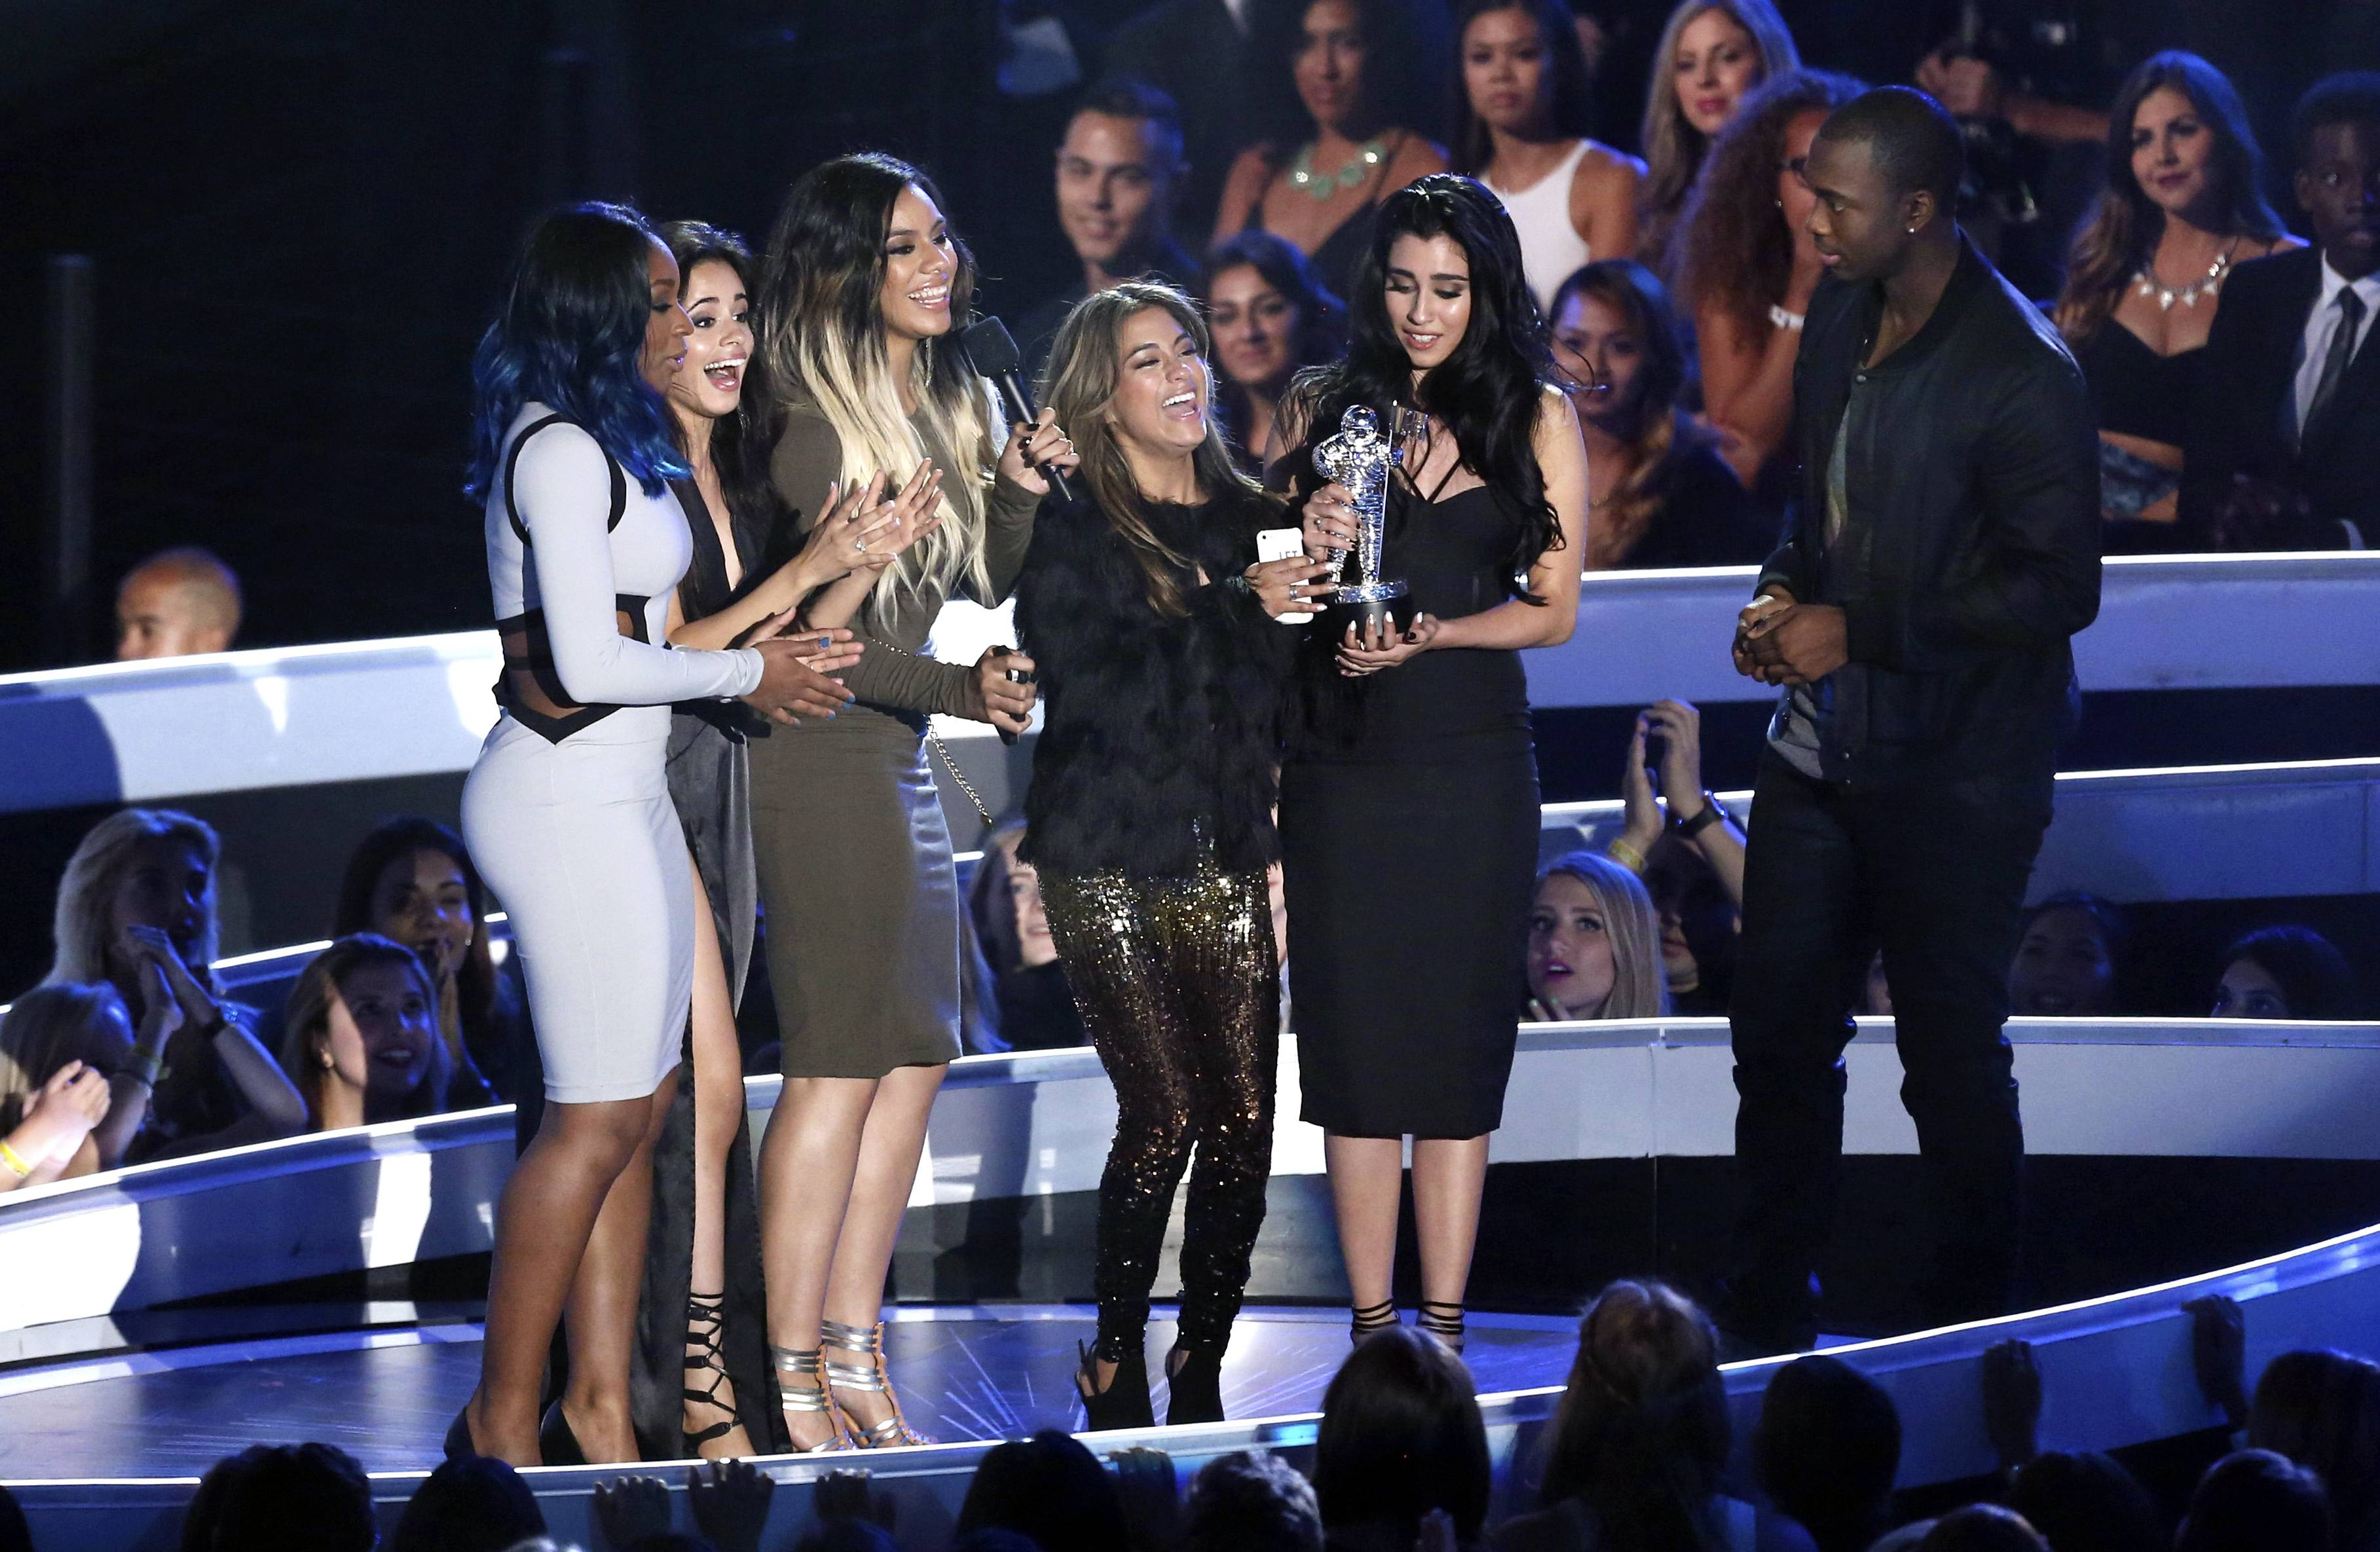 Normani Hamilton, from left, Camila Cabello, Dinah Jane Hansen, Ally Brooke and Lauren Jauregui of Fifth Harmony accept the award for Artist to Watch at the MTV Video Music Awards.